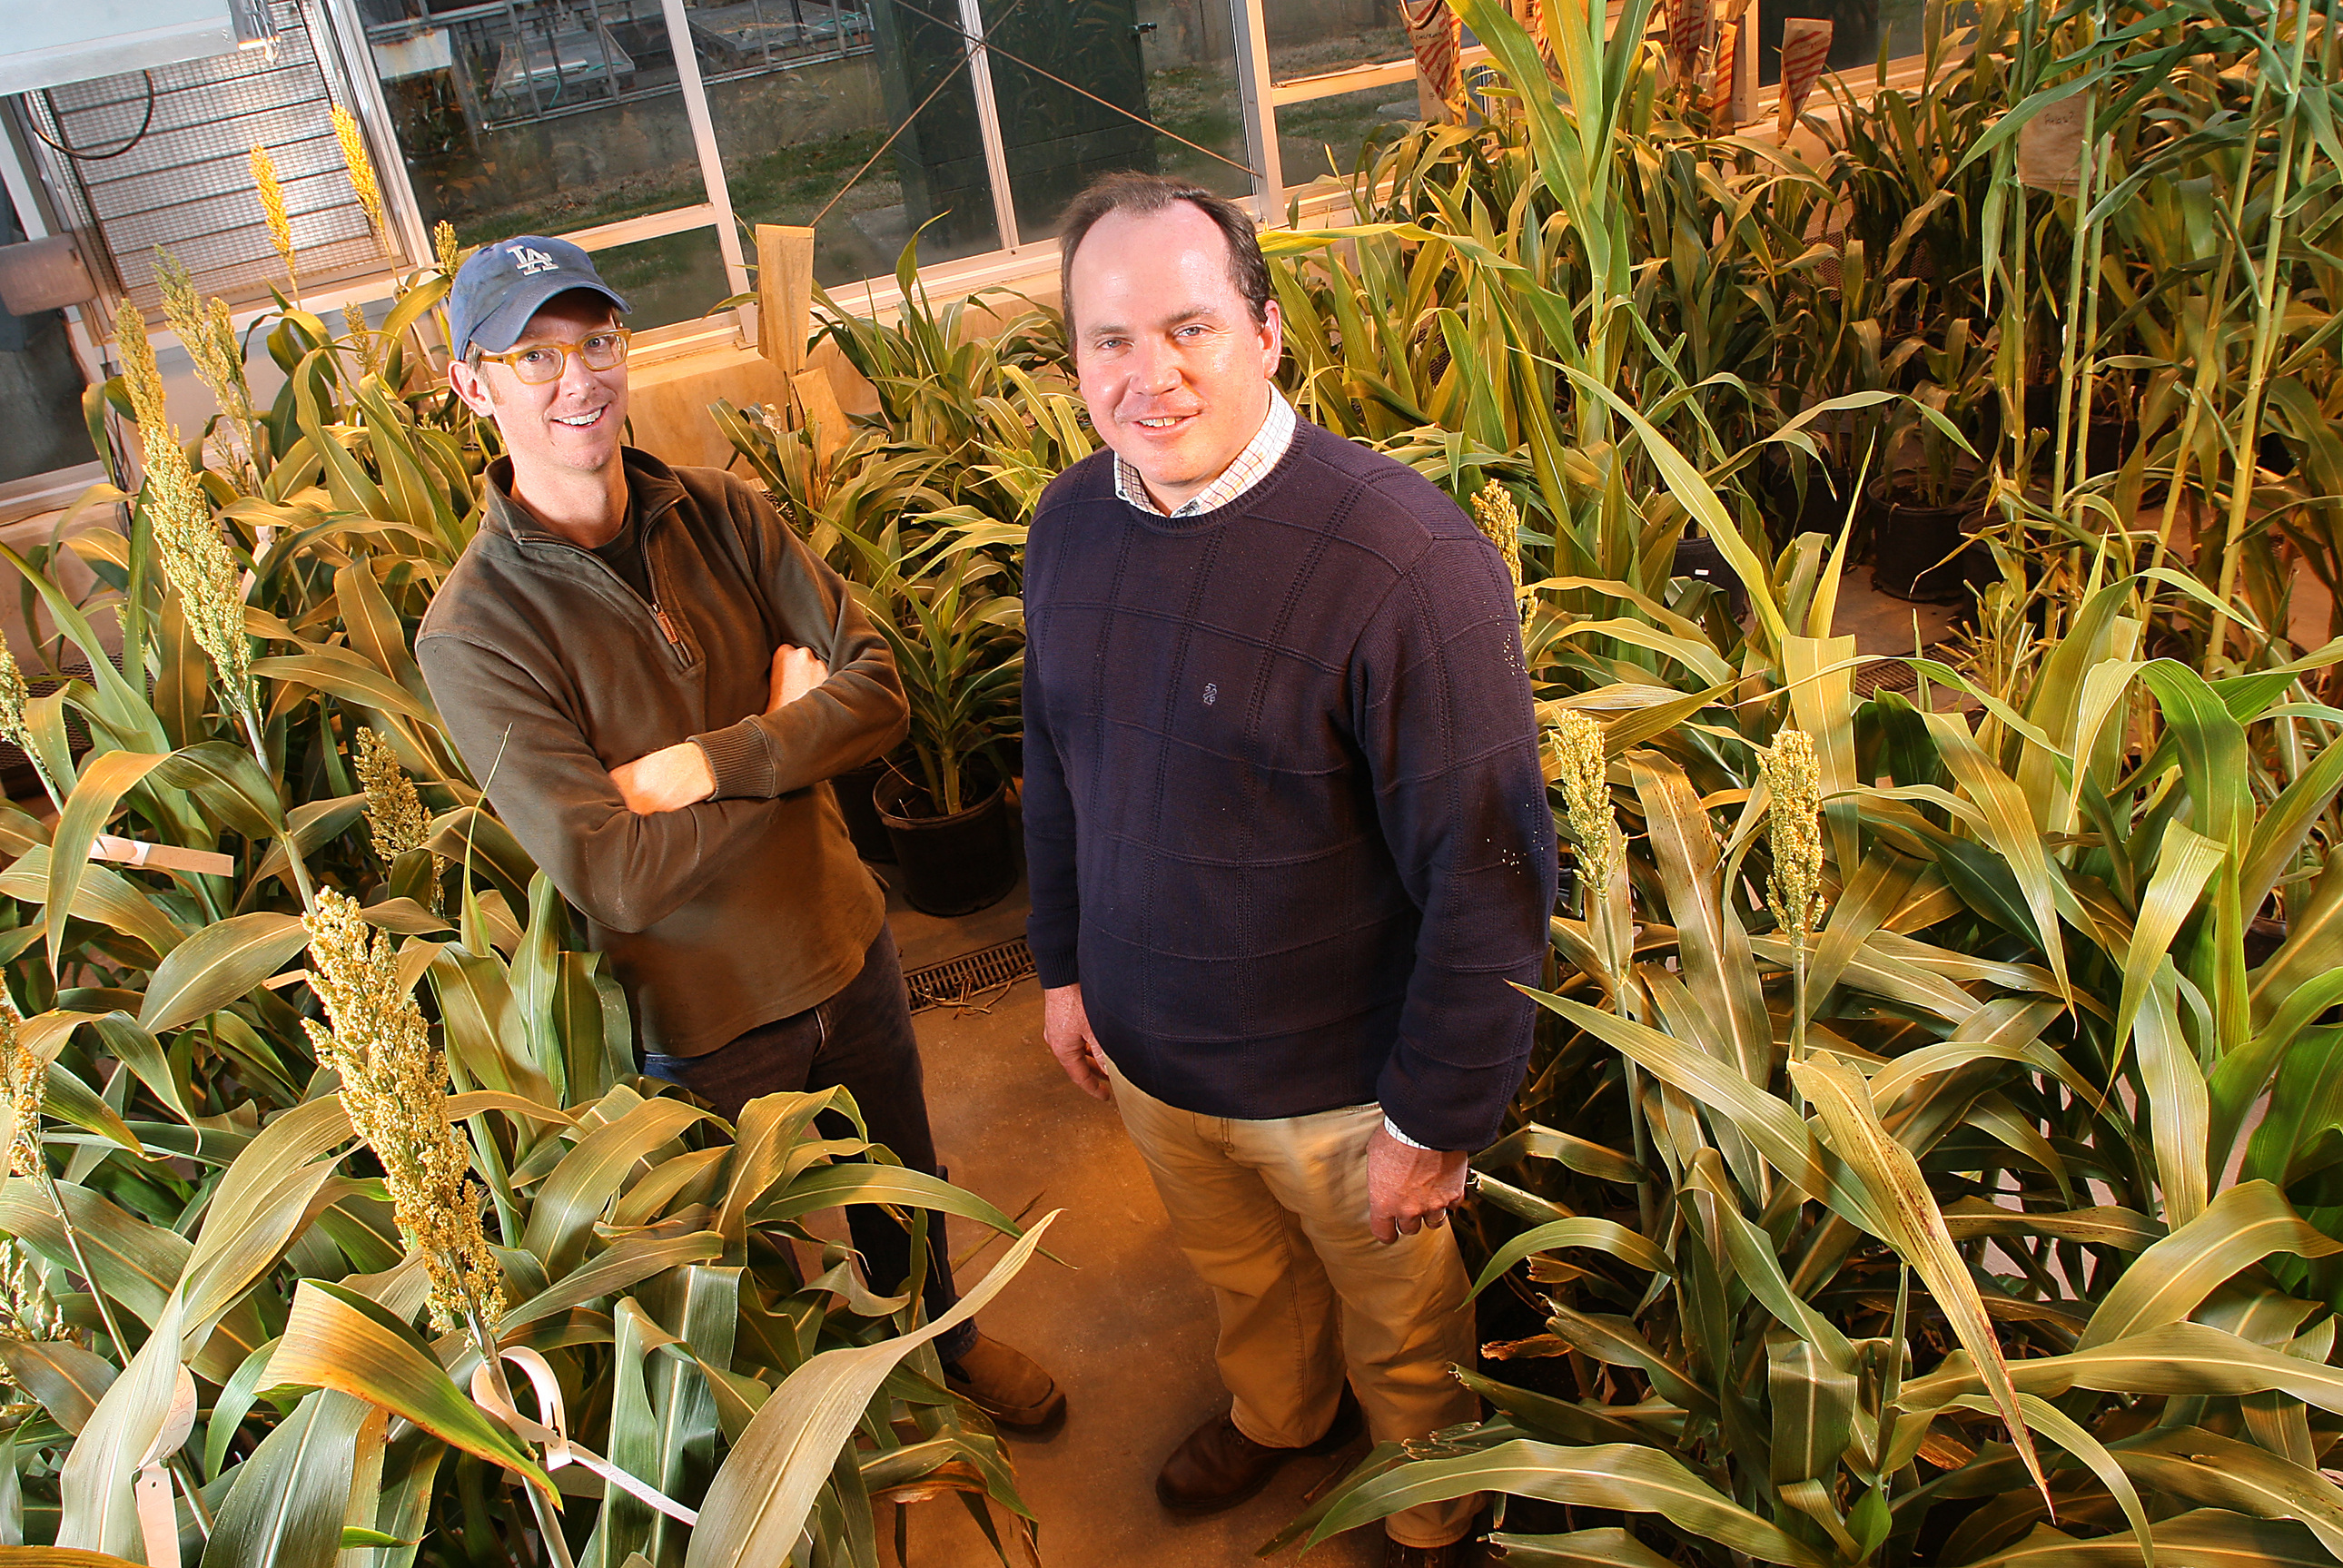 Brian Dilkes, at left, and Mitch Tuinstra with sorghum plants.